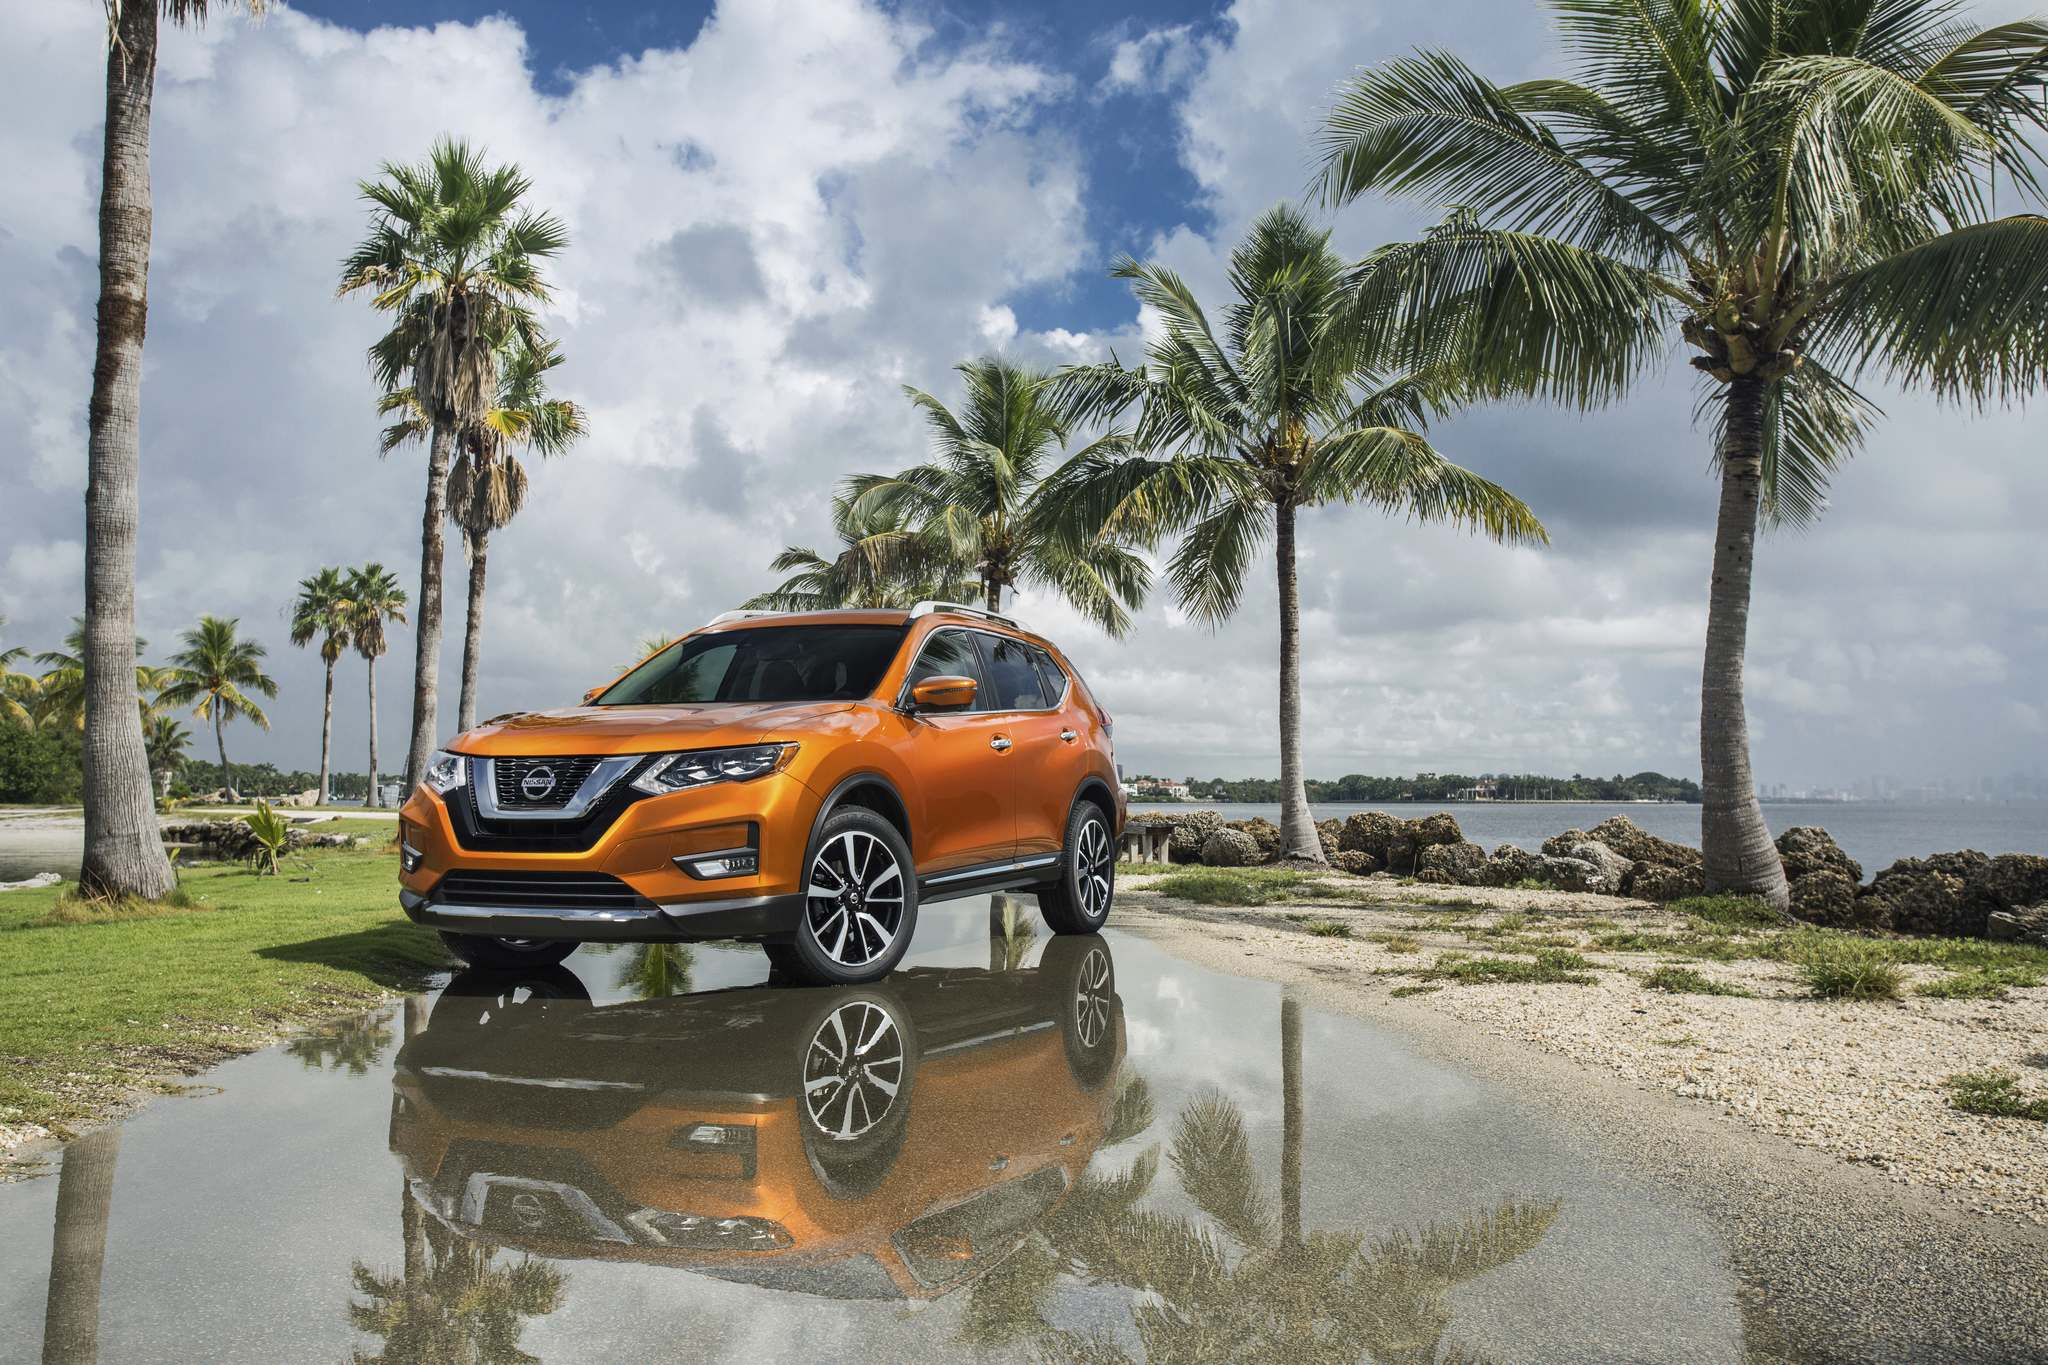 Photos / NissanThe Nissan Rogue, following three straight years of sales growth since the introduction of the completely redesigned second generation for the 2014 model year, takes another major step forward for 2017 with a new look, enhanced utility and an expanded suite of Nissan Safety Shield technologies.